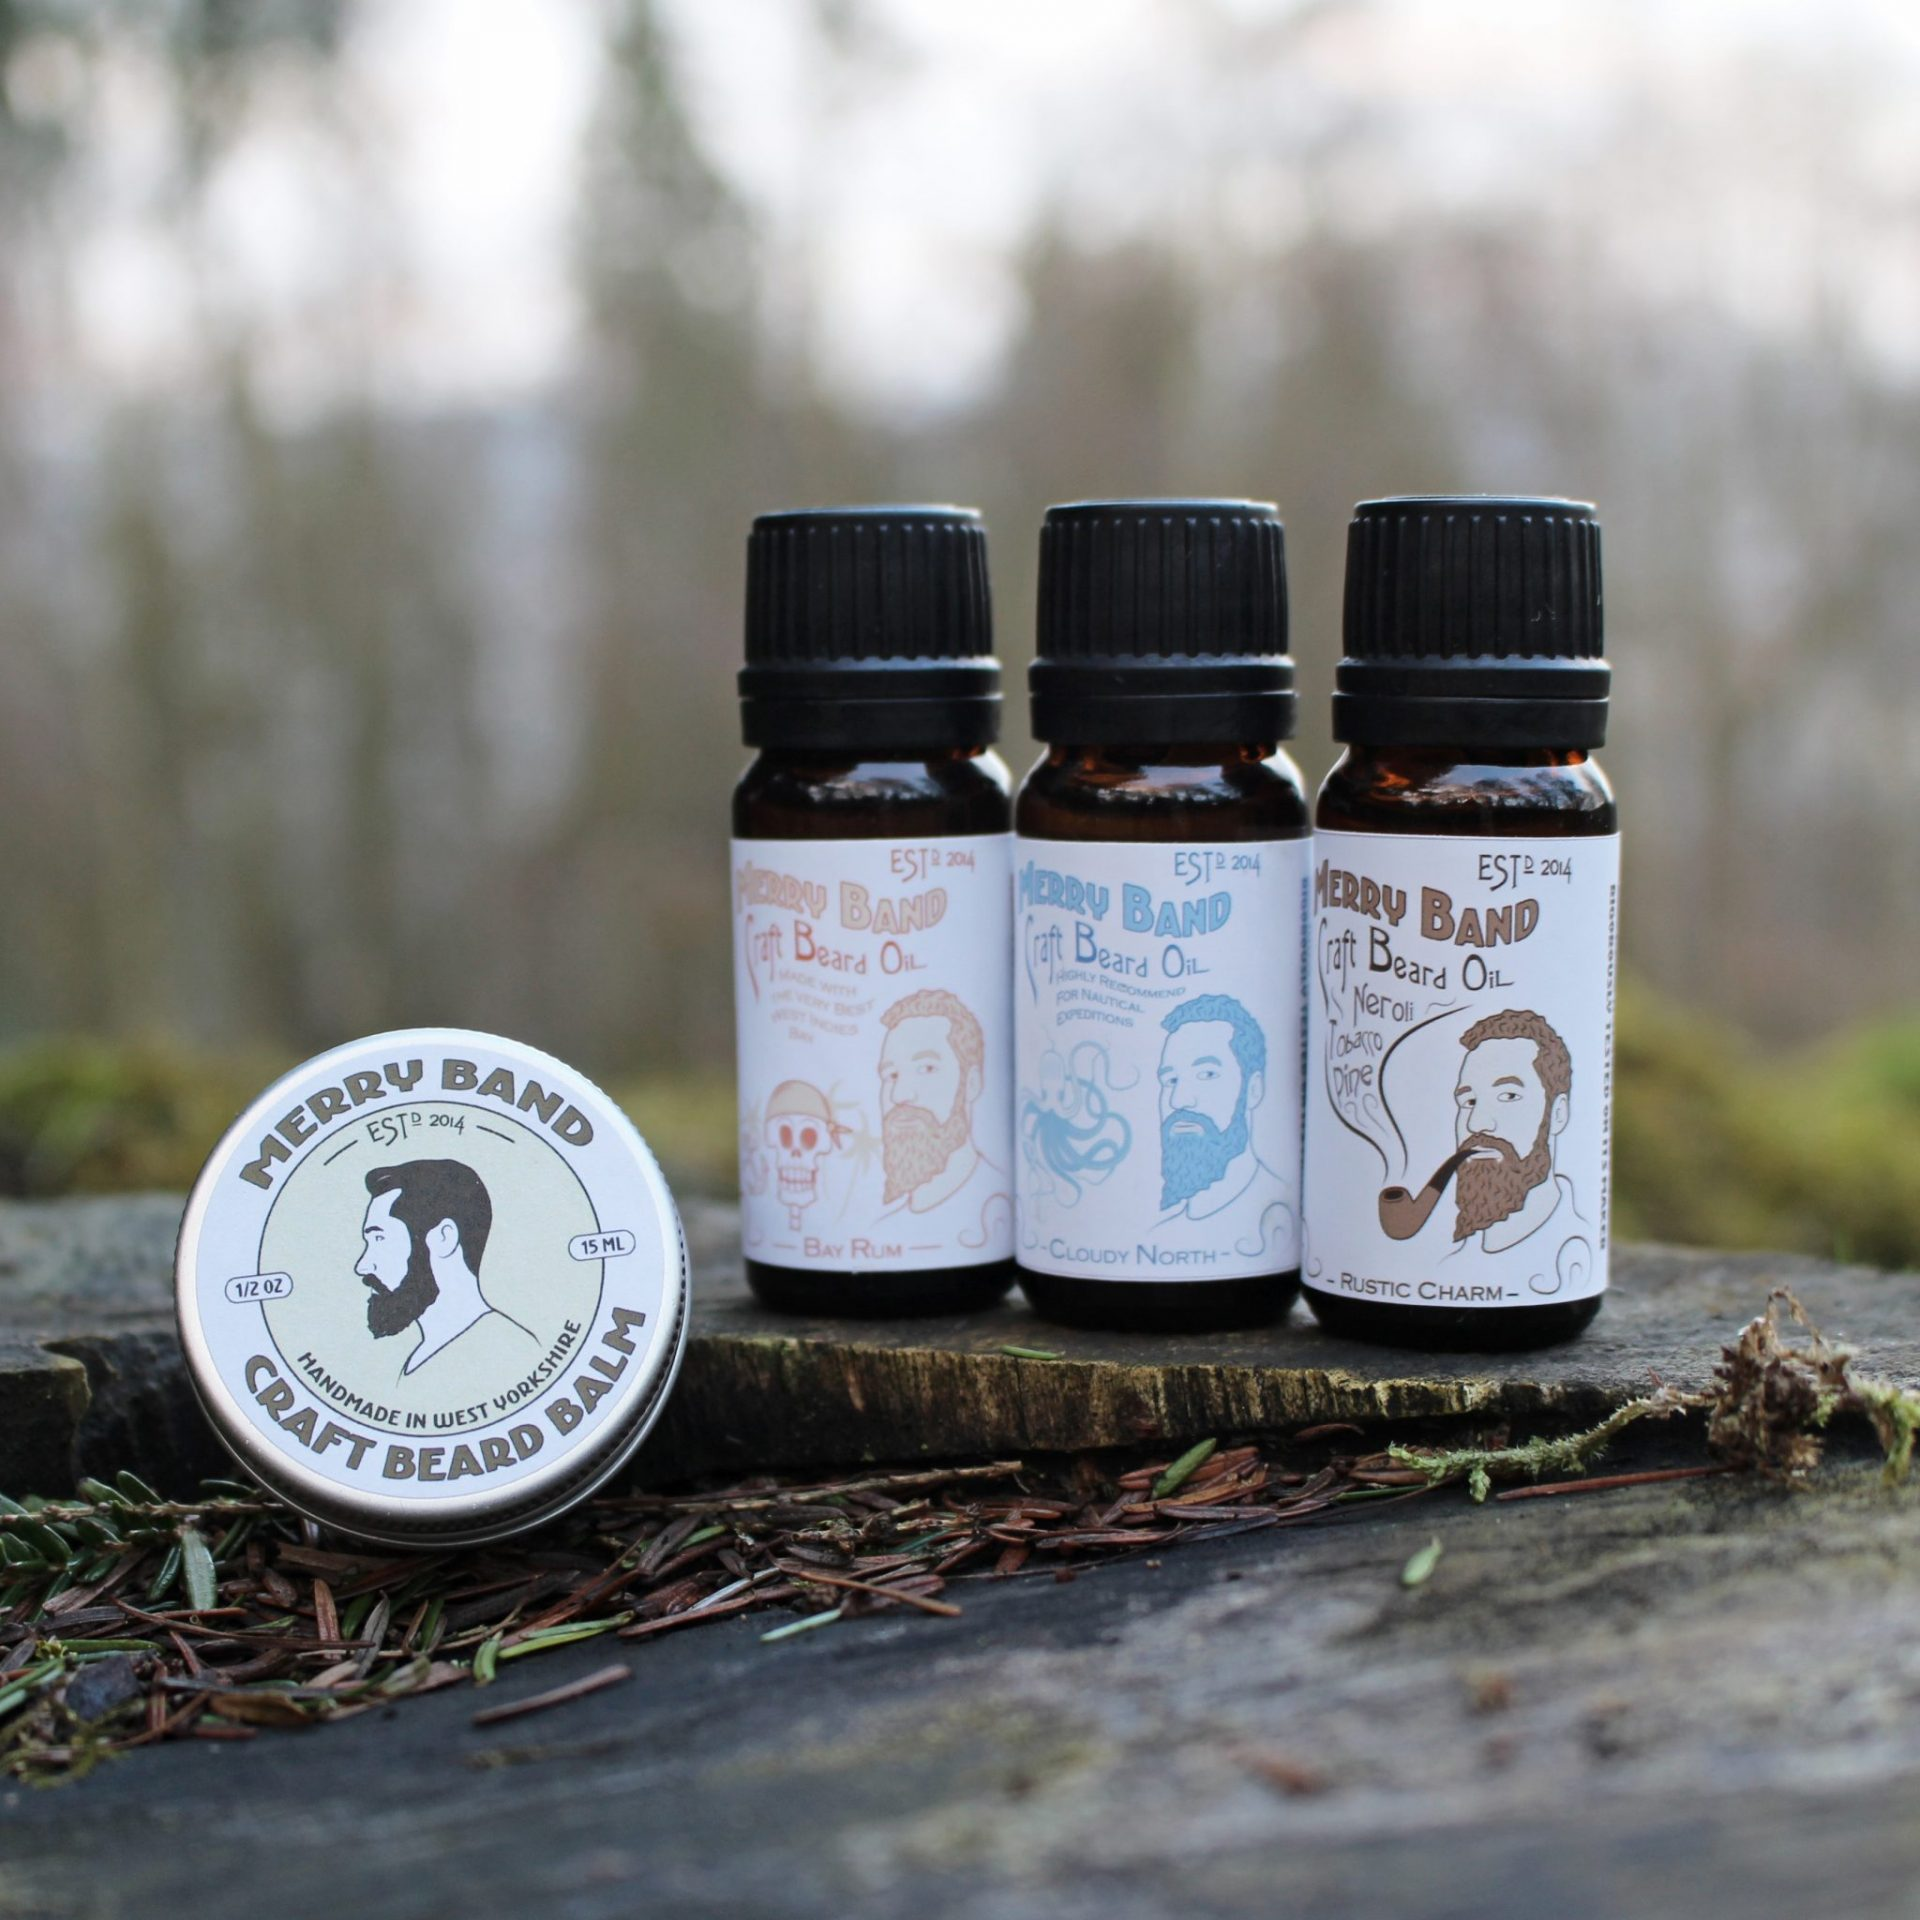 Merry Band Beard Oil, pomade & wax for male grooming Leeds, beard oils, moustache wax, balms and pomades, perfect for gifts, vegan, organic